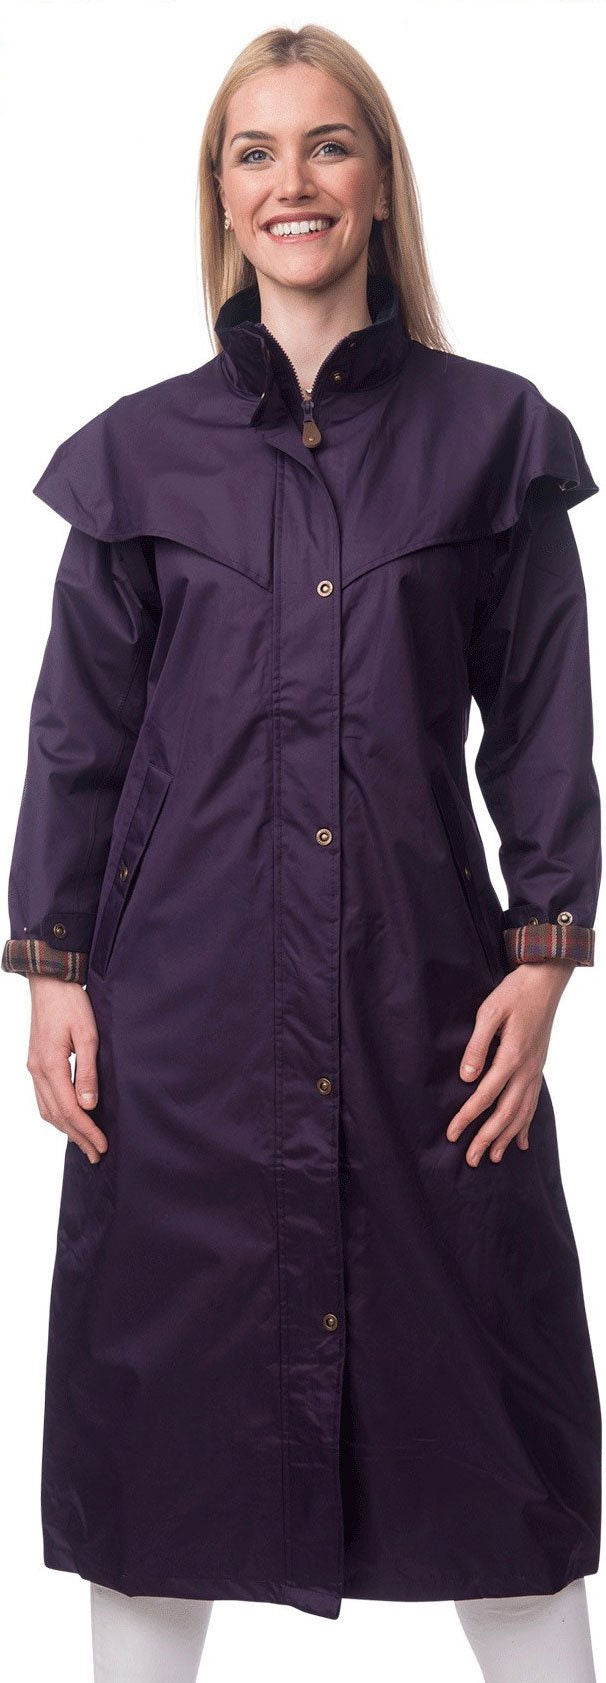 Target Dry Outback 2 Full Length Long Waterproof Coat.